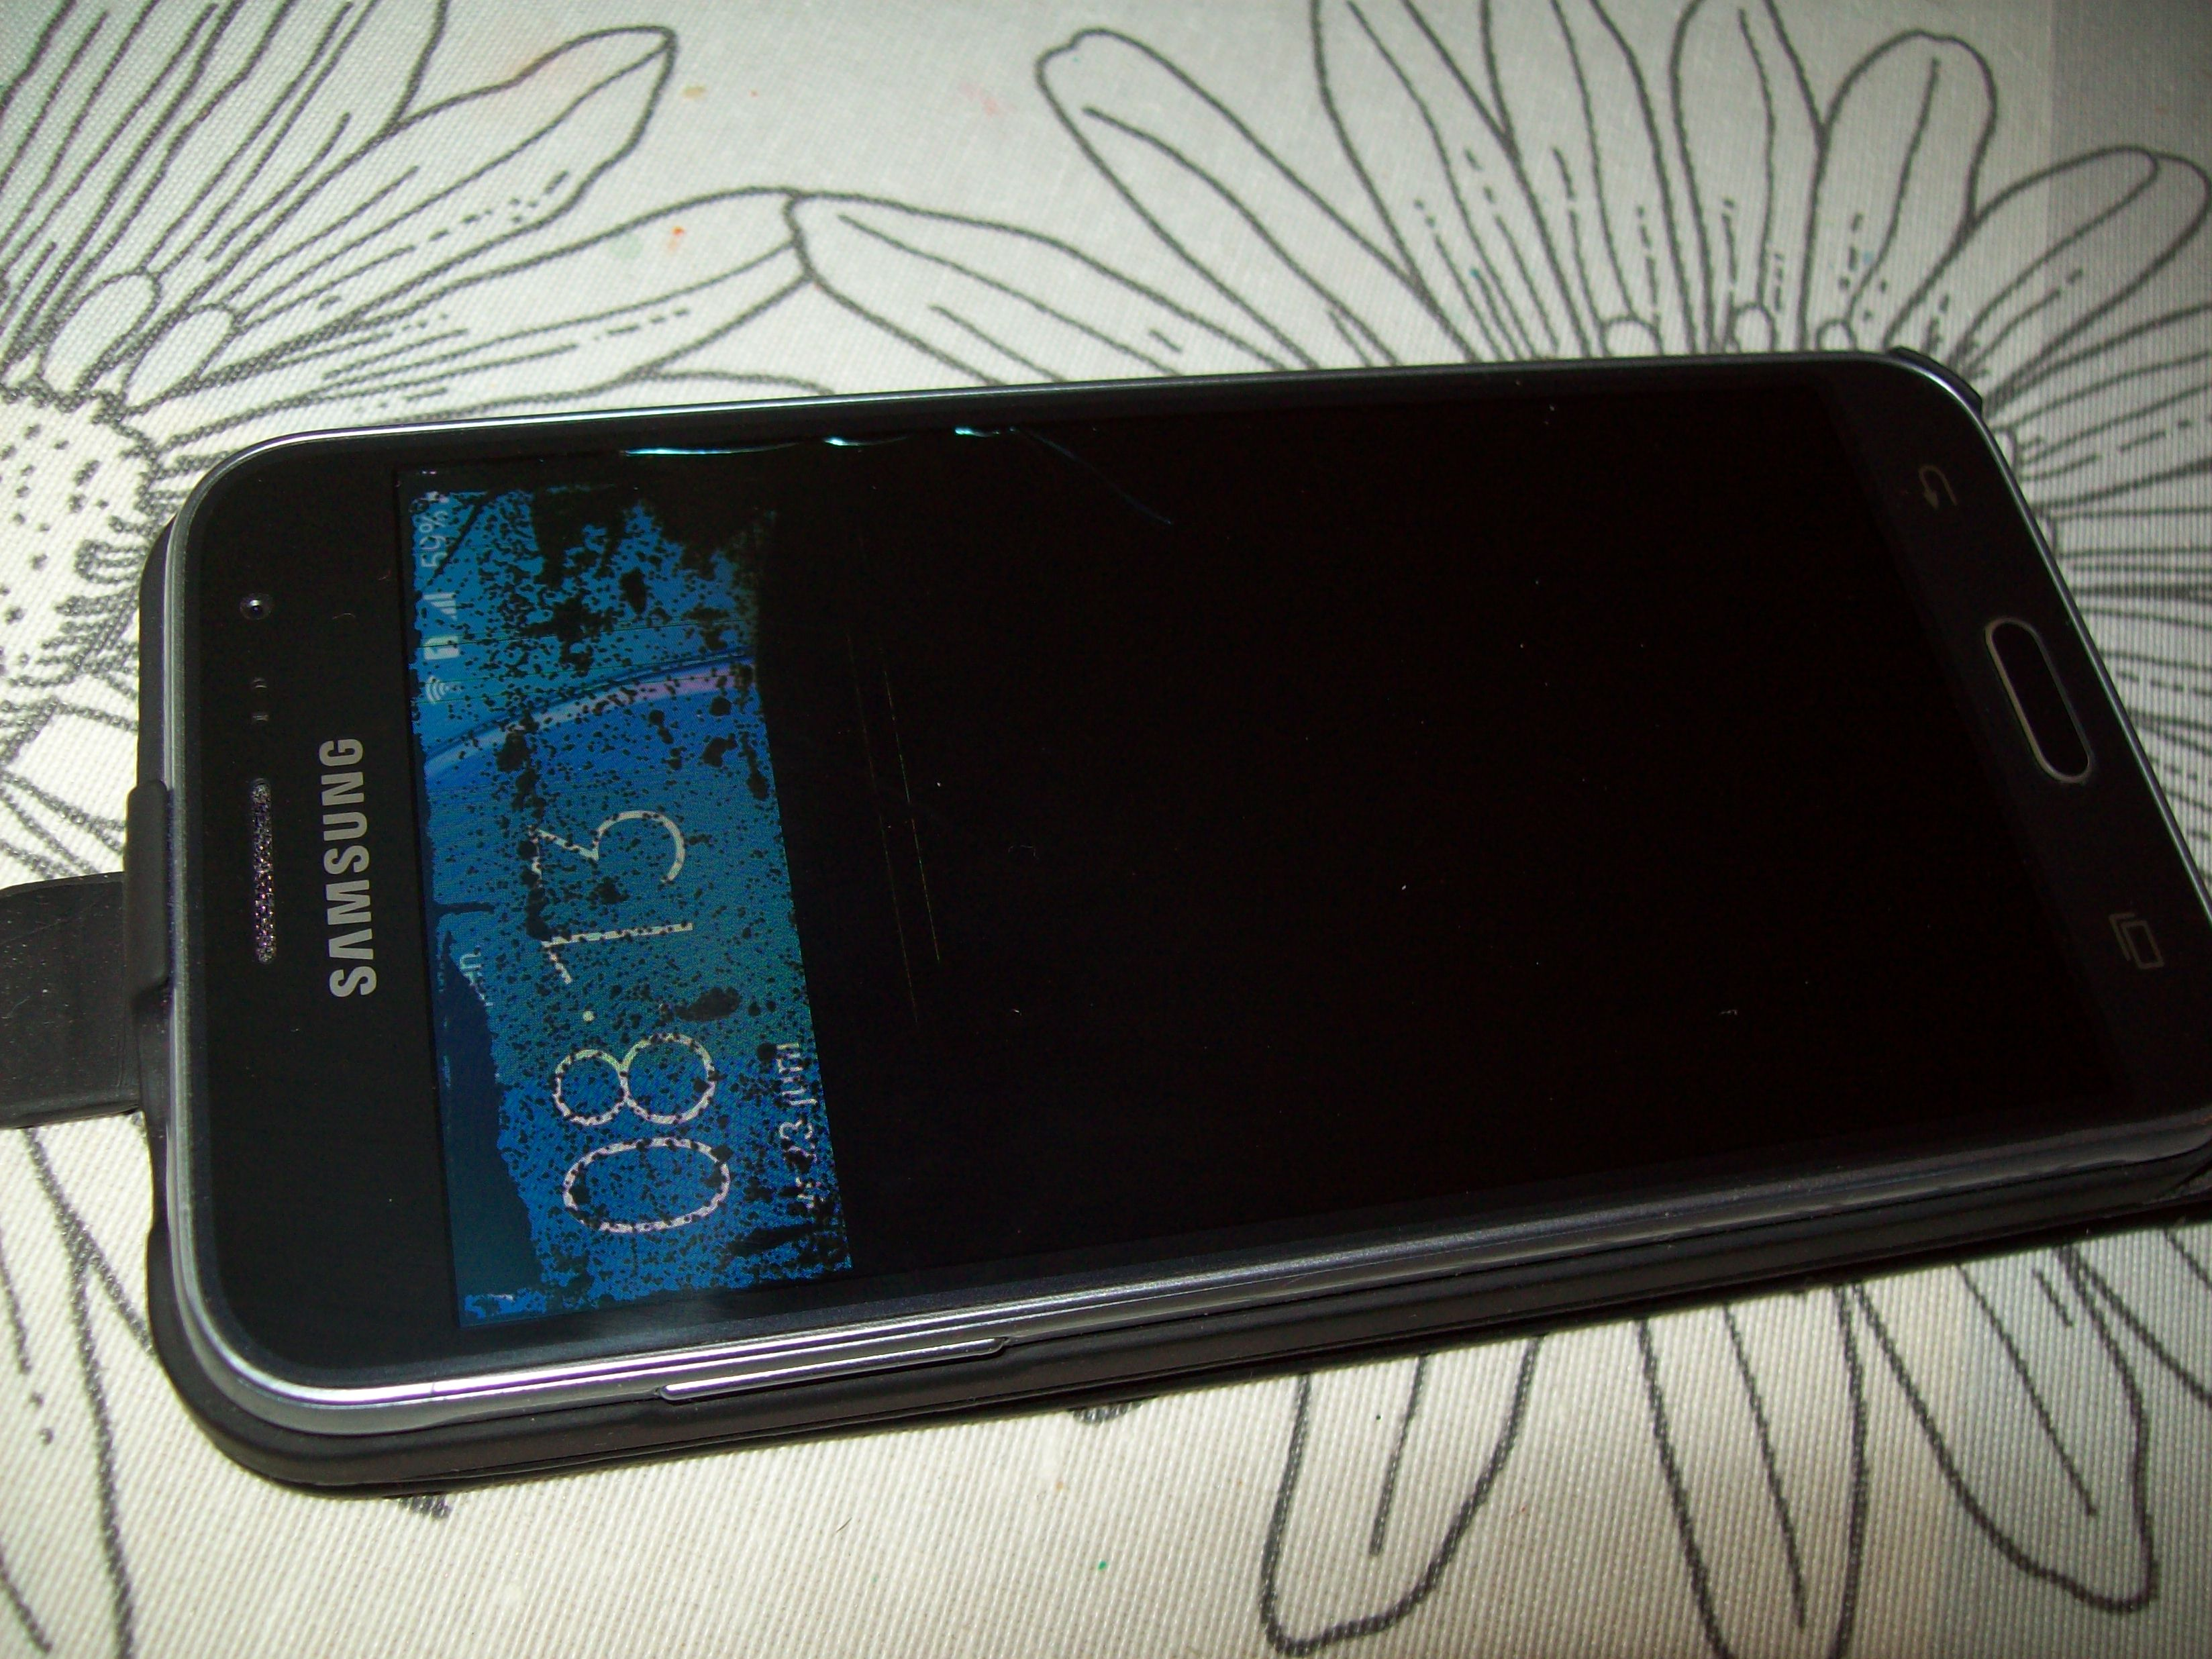 Anyone have trouble with Galaxy J3 screens breakin Samsung